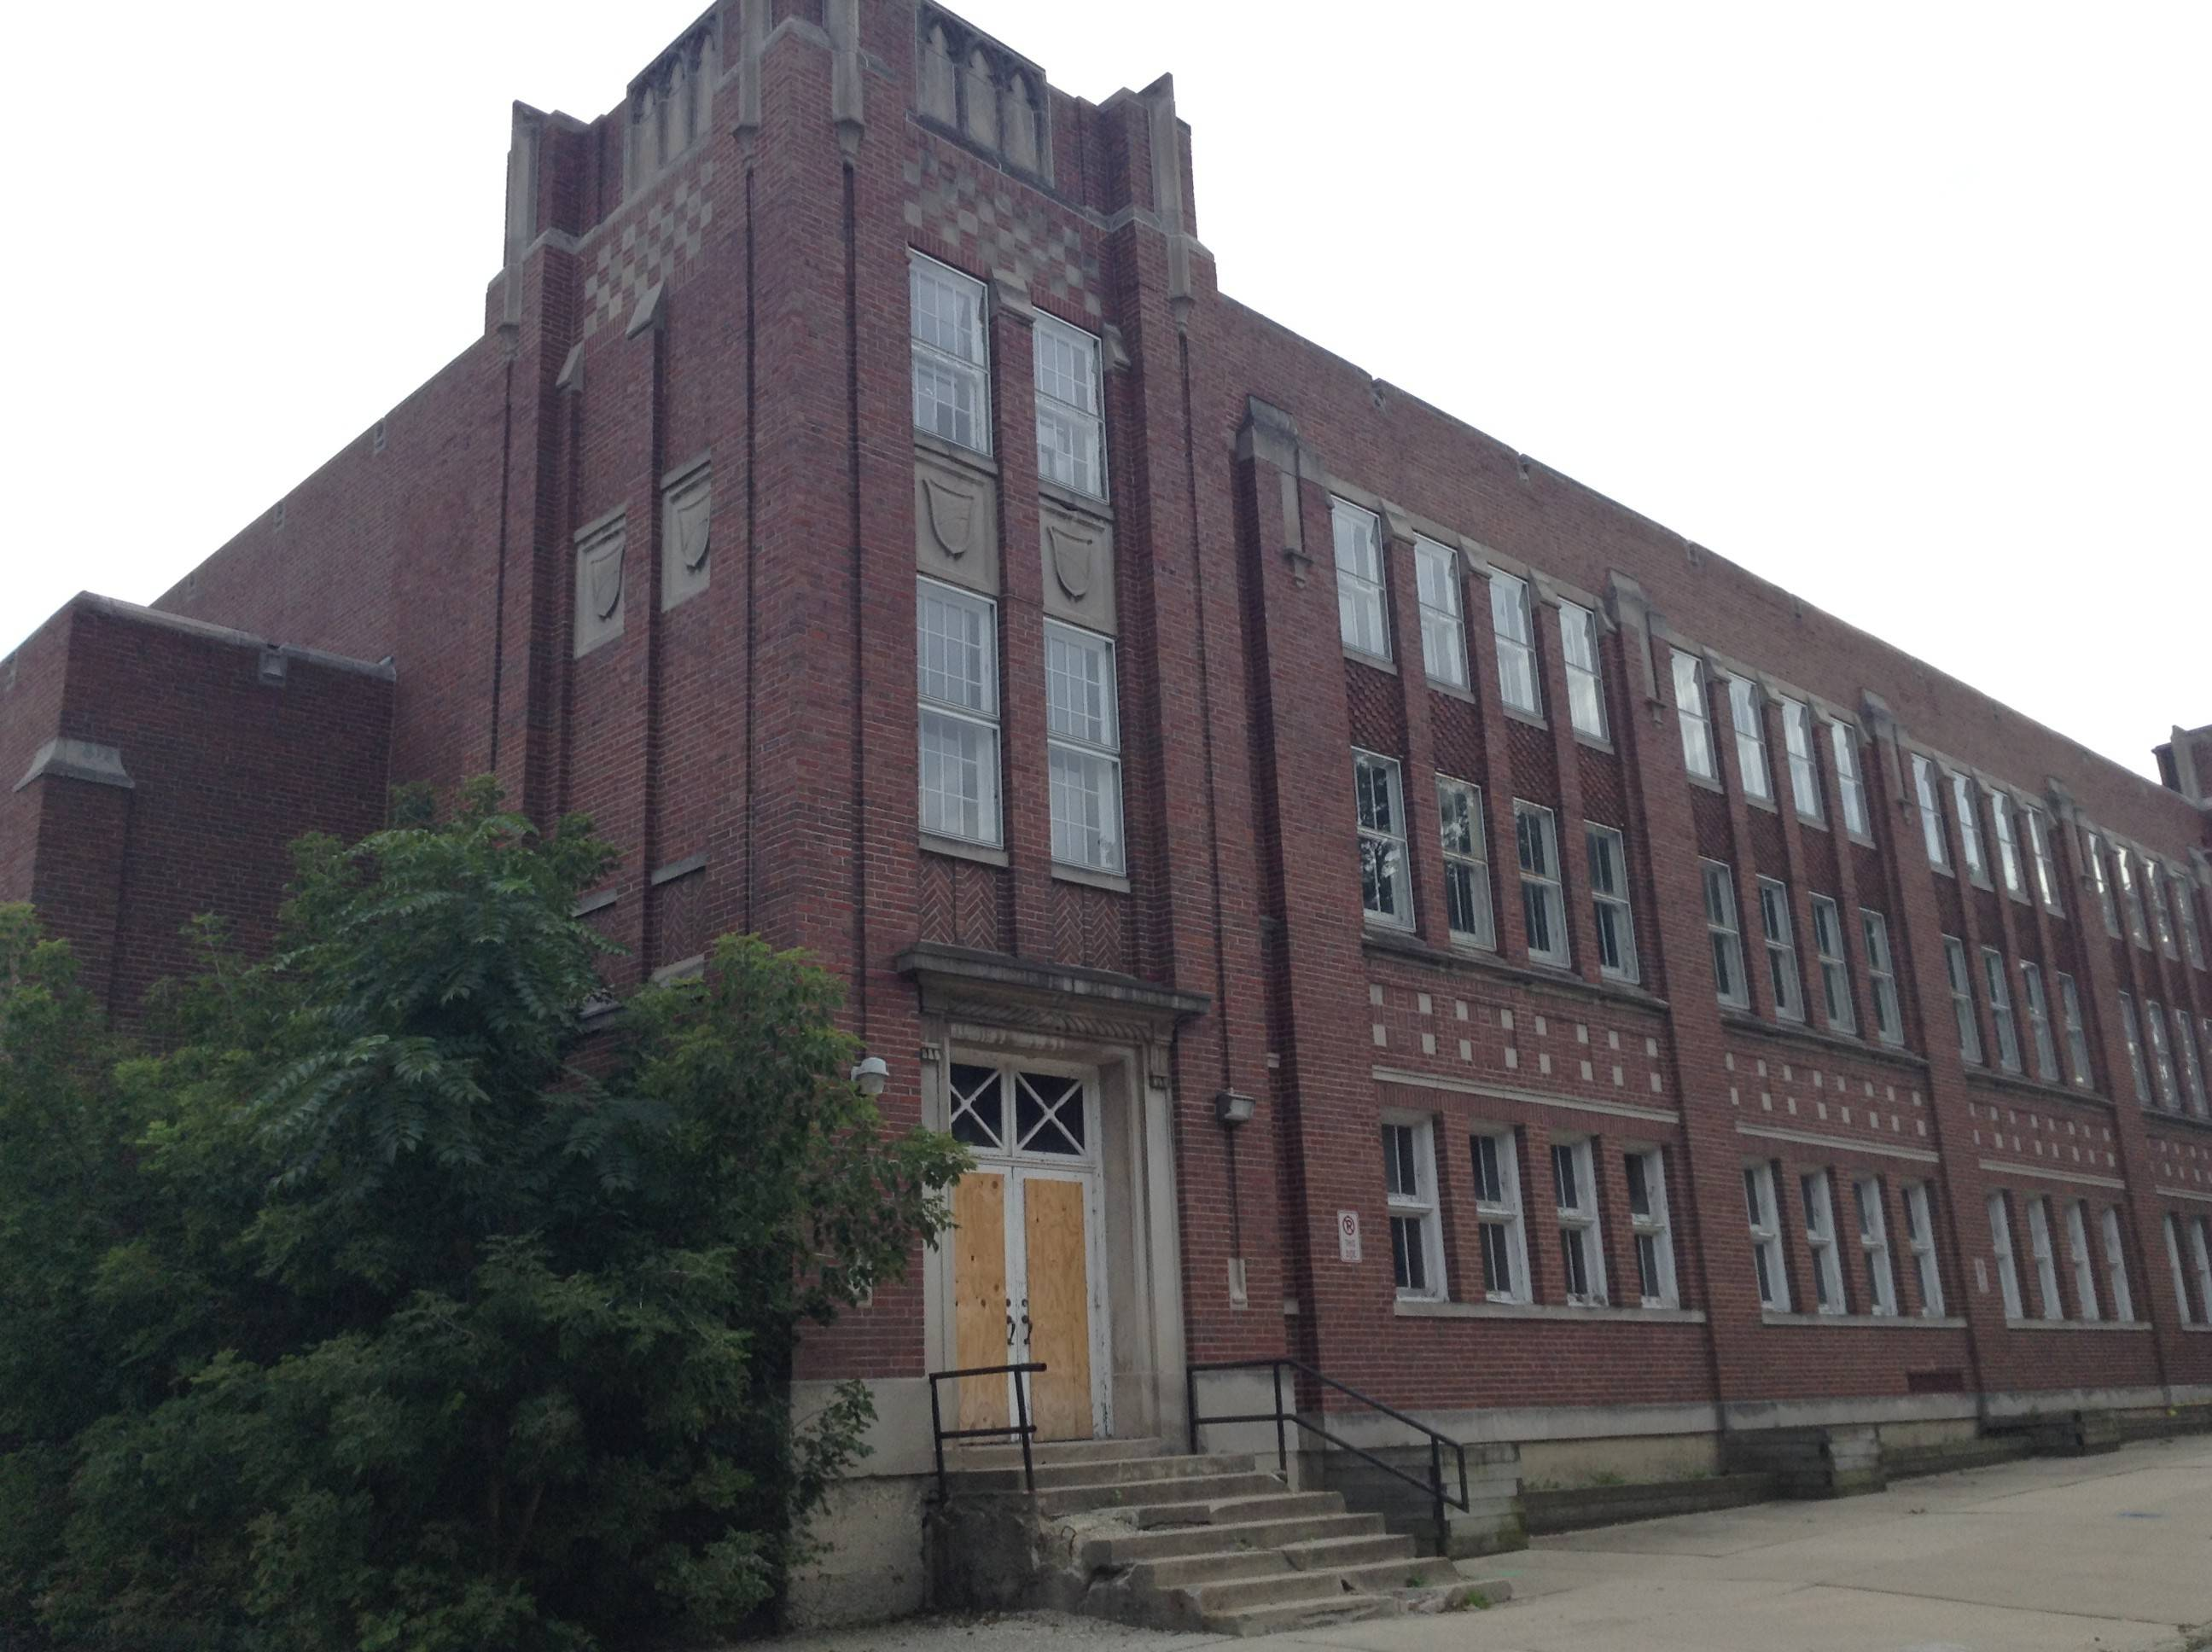 Brainerd Building demolition set for November